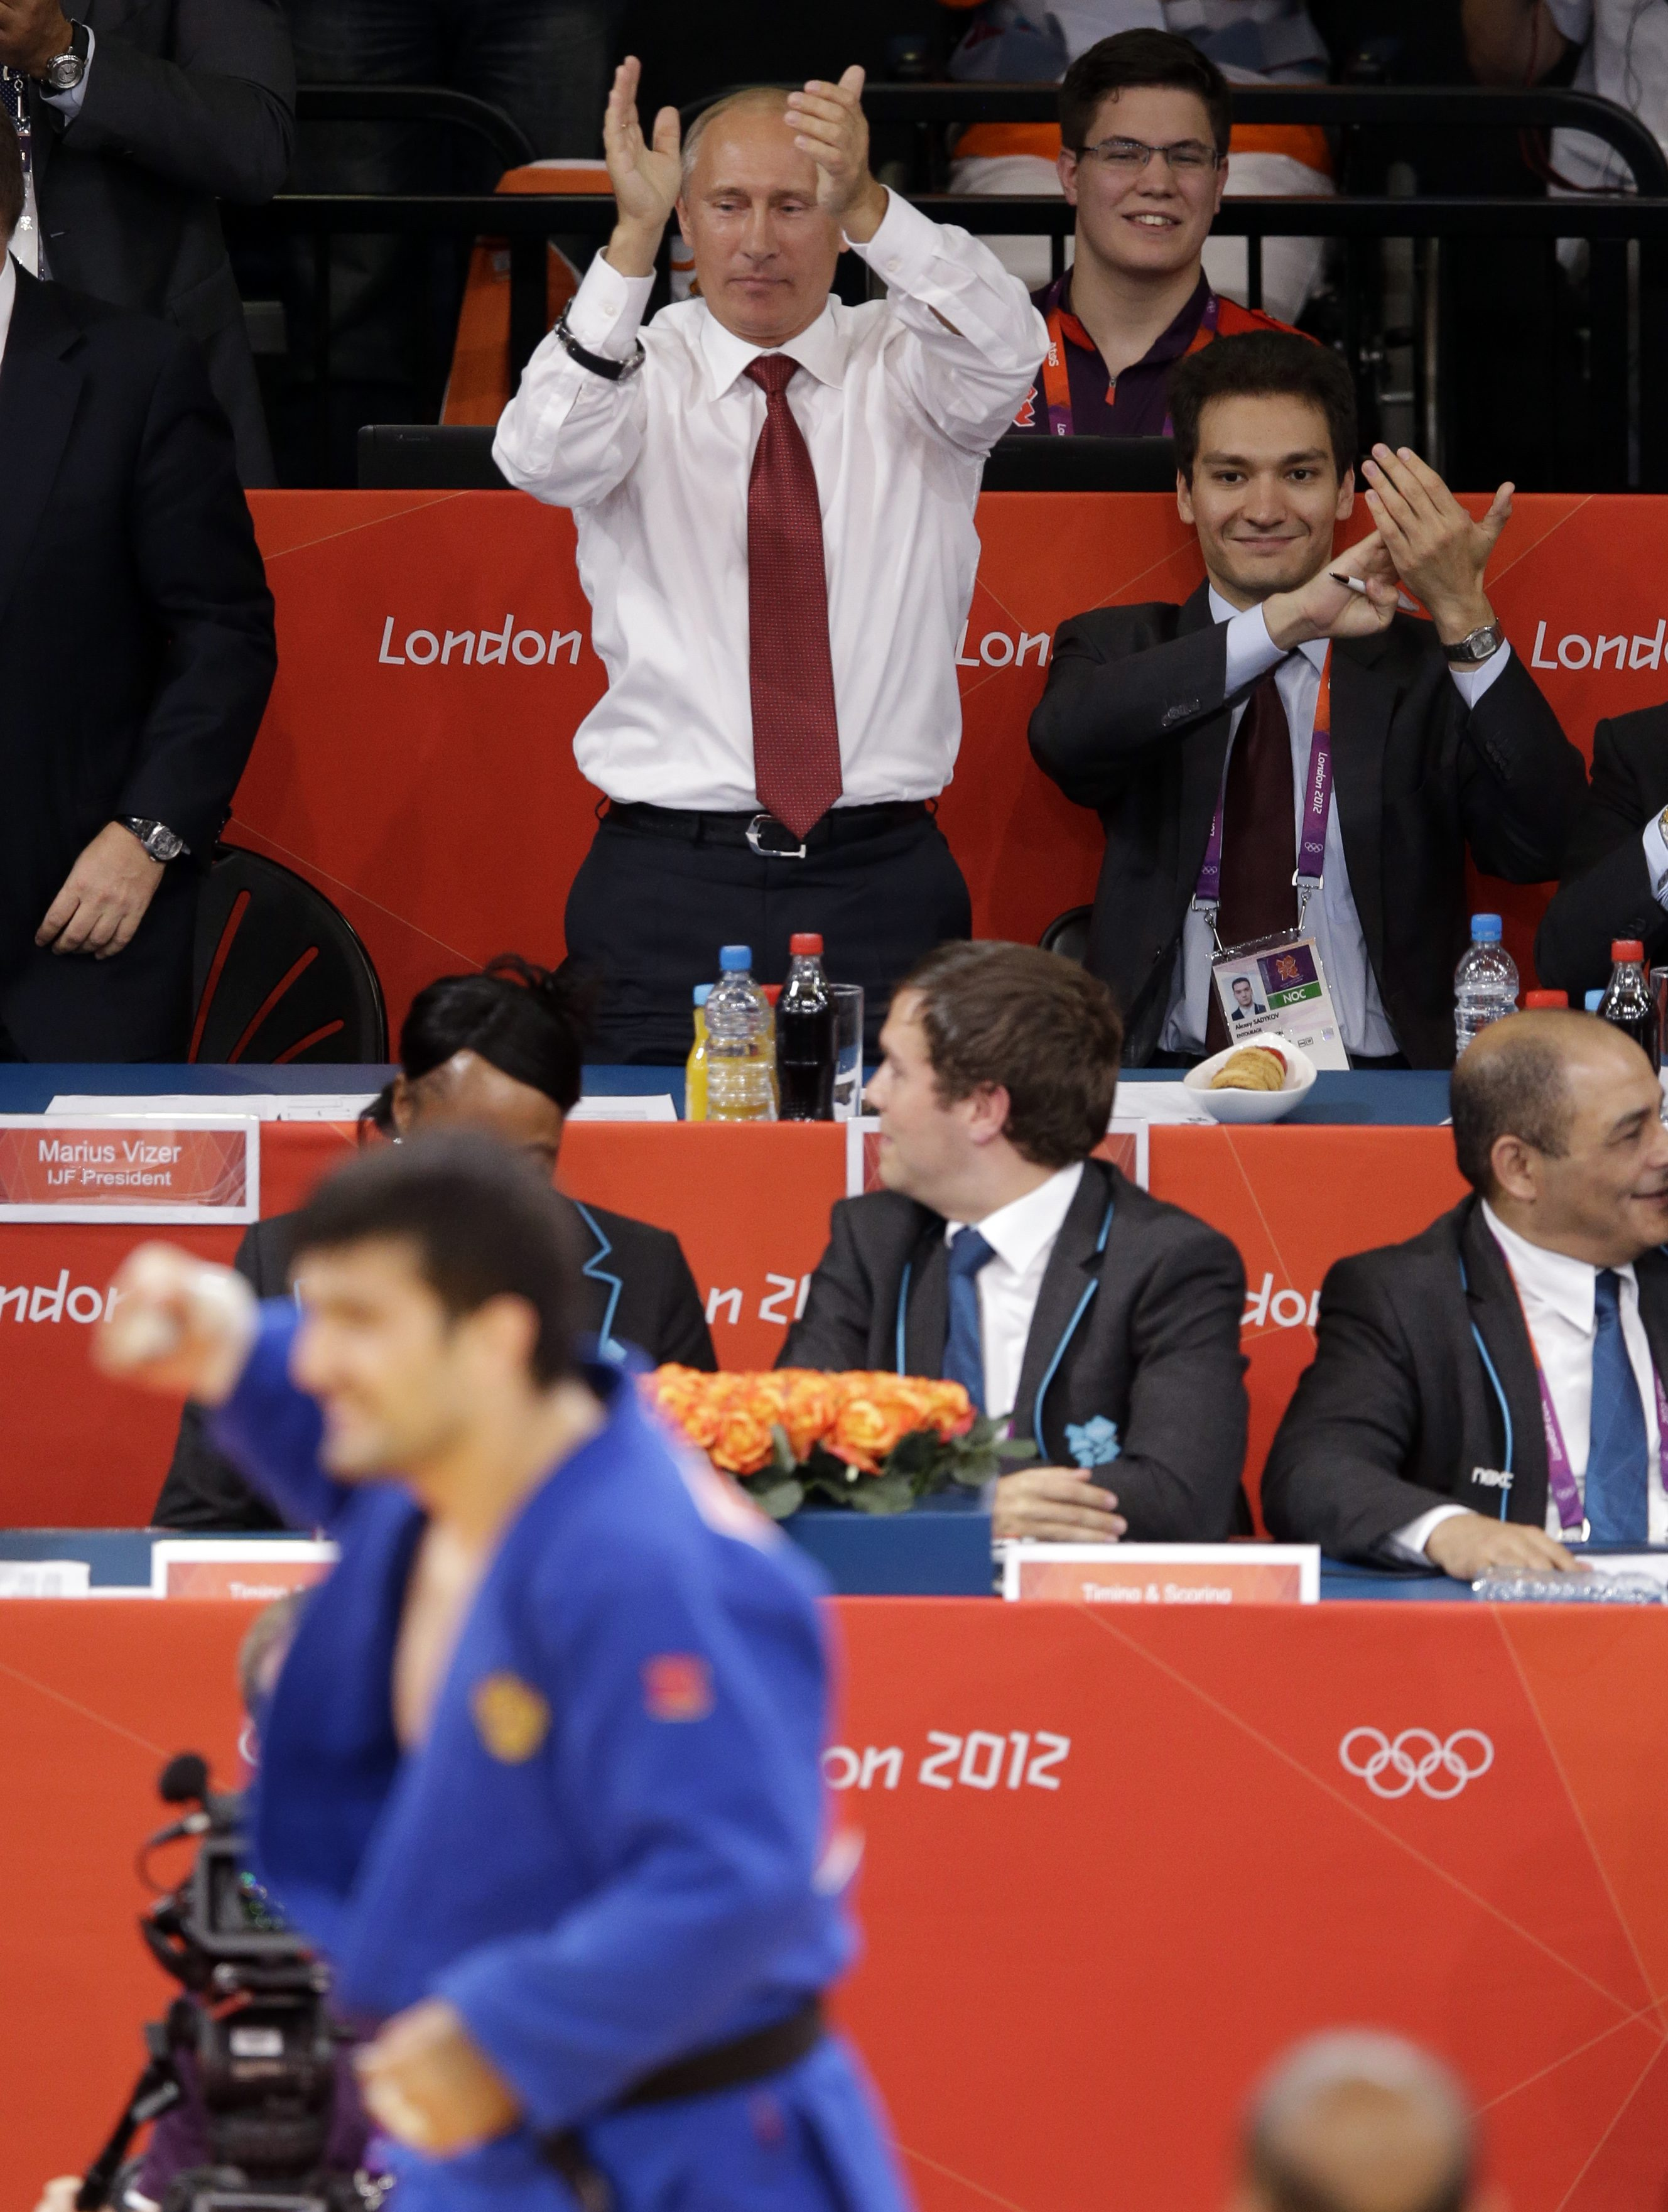 Russian President Vladimir Putin applauds Tagir Khaibulaev of Russia after he beat Tuvshinbayar Naidan of Mongolia  to win the gold medal during the men's 100-kg judo competition at the 2012 Summer Olympics, Thursday, Aug. 2, 2012, in London. (AP Photo/Ng Han Guan)